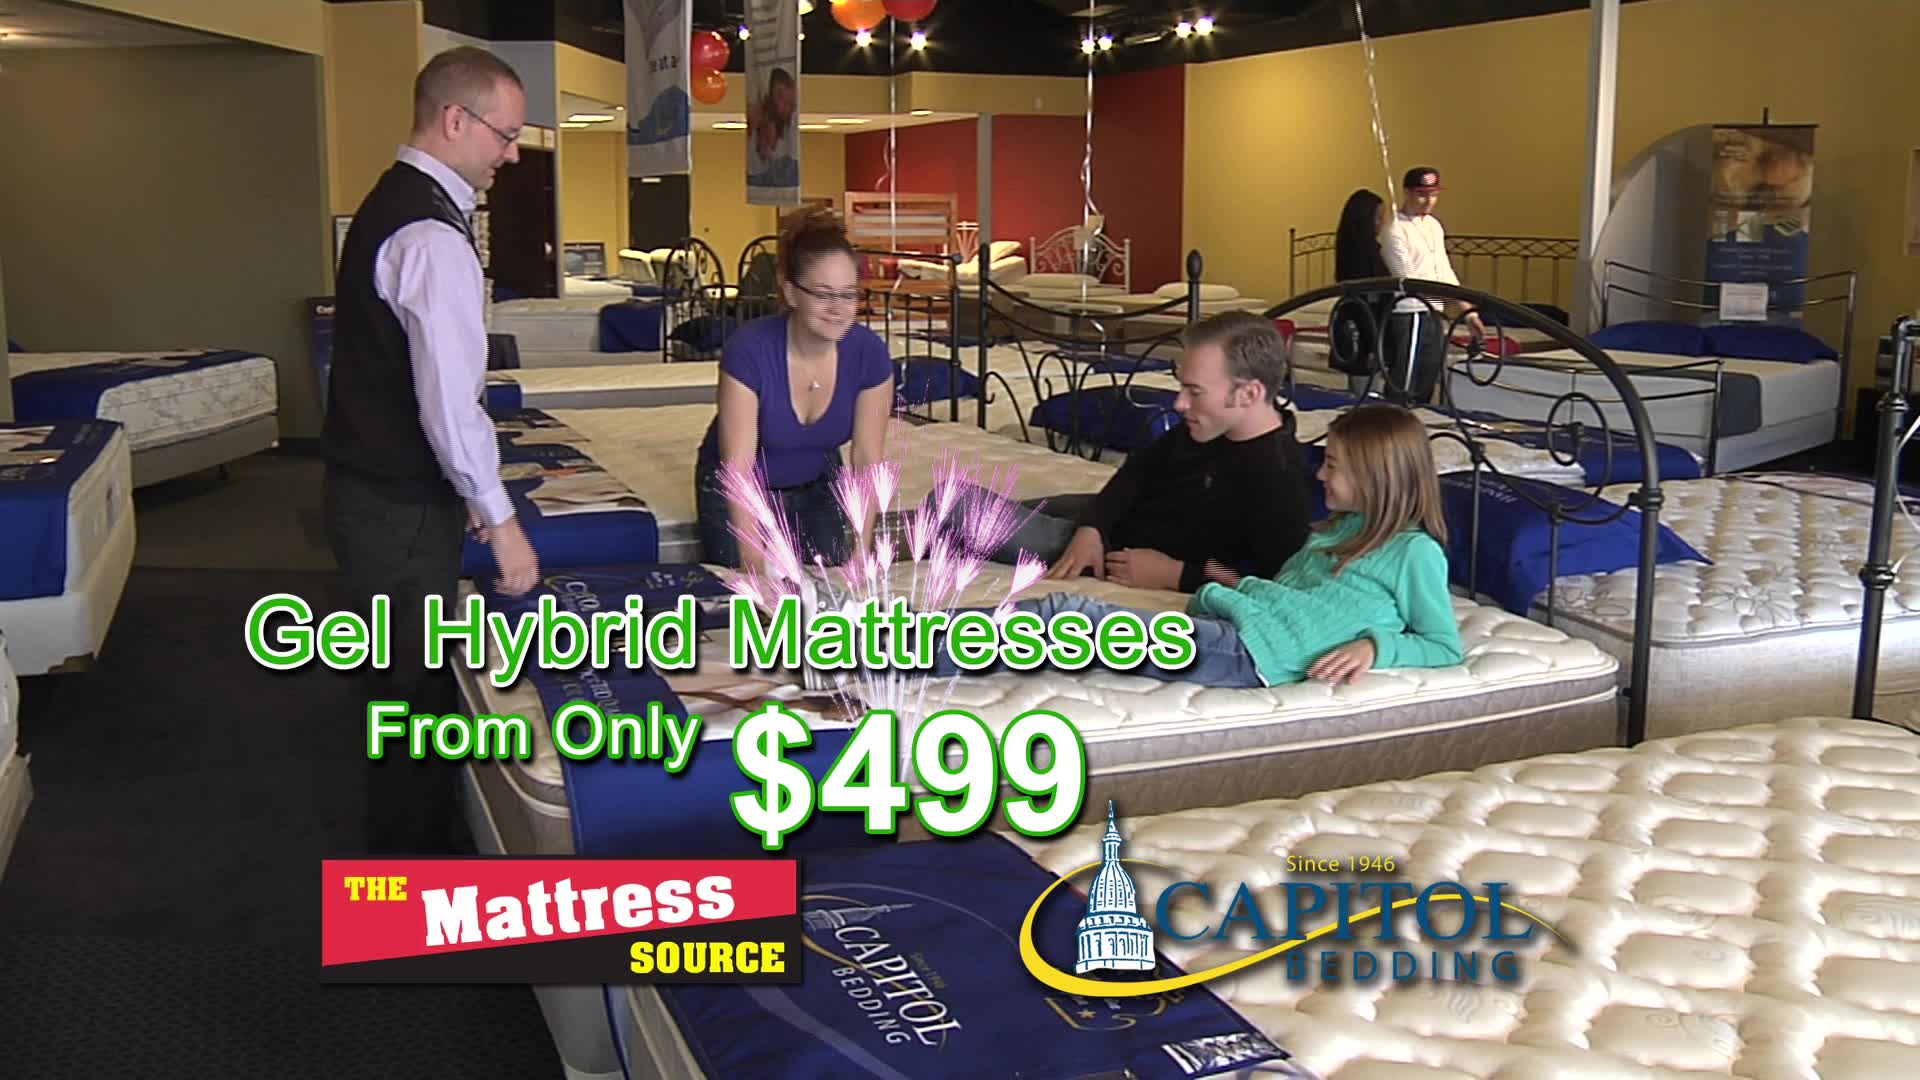 Mattress Source 4th of July Sale Through July 9th!